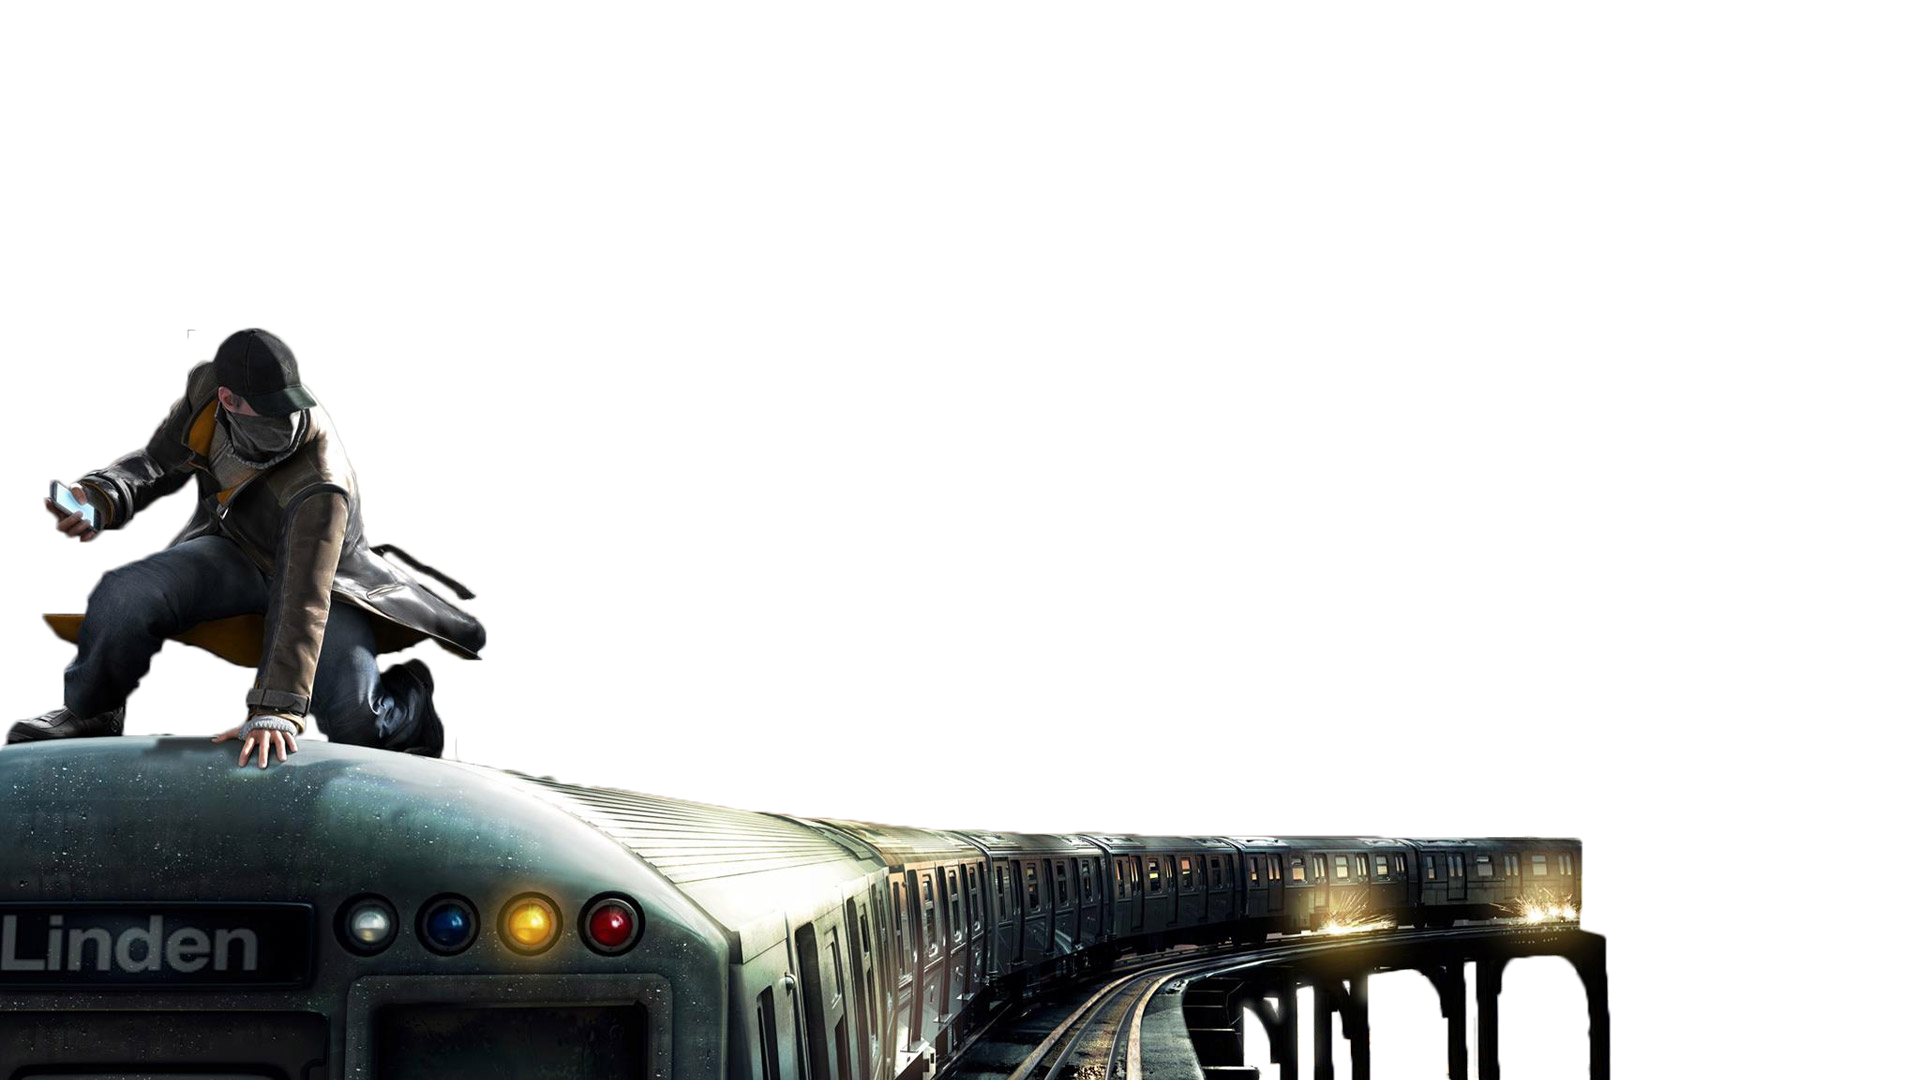 Watch Dogs On the train by RajivCR7